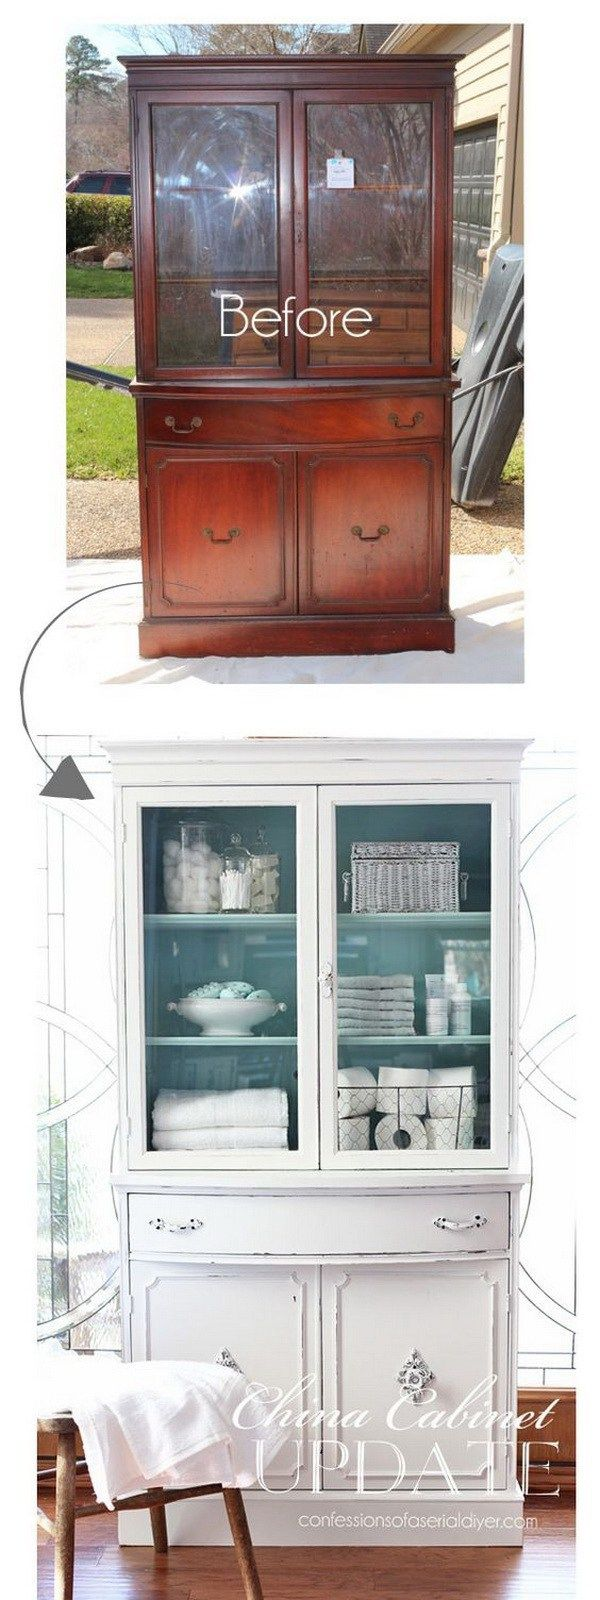 Thrift Store China Cabinet Makeover. Give your old cabinet a new shabby chic look with some paint and hardwares!